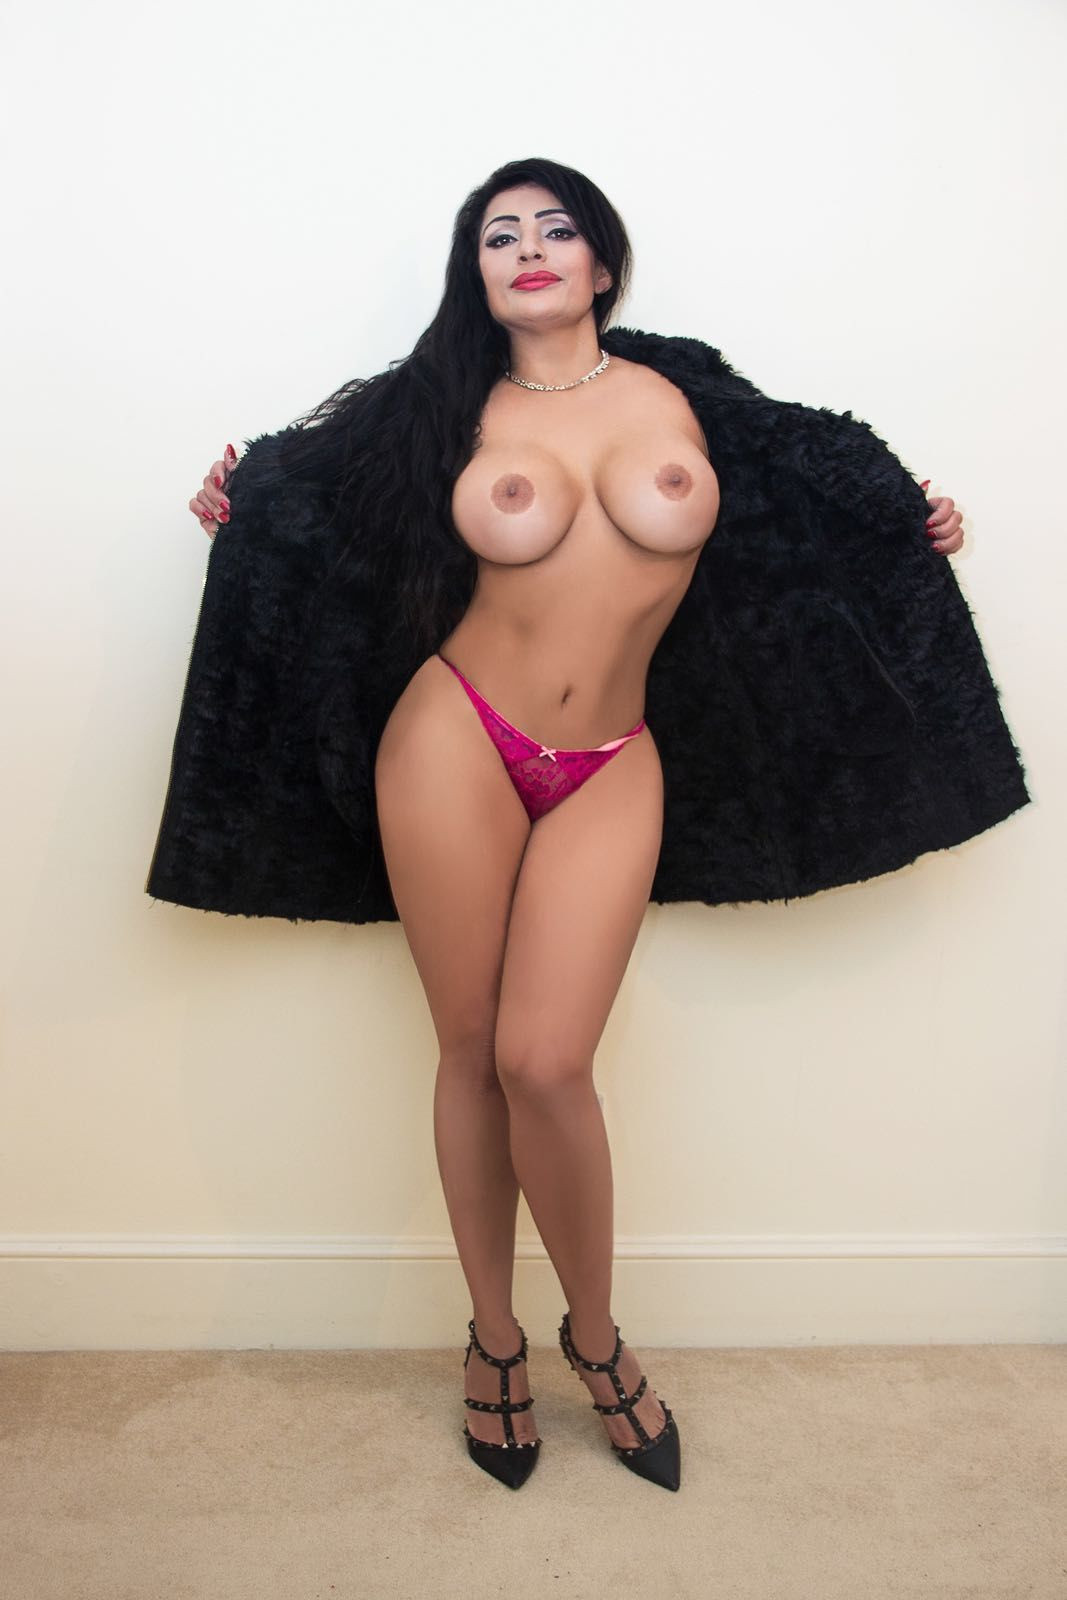 Black london escorts julia